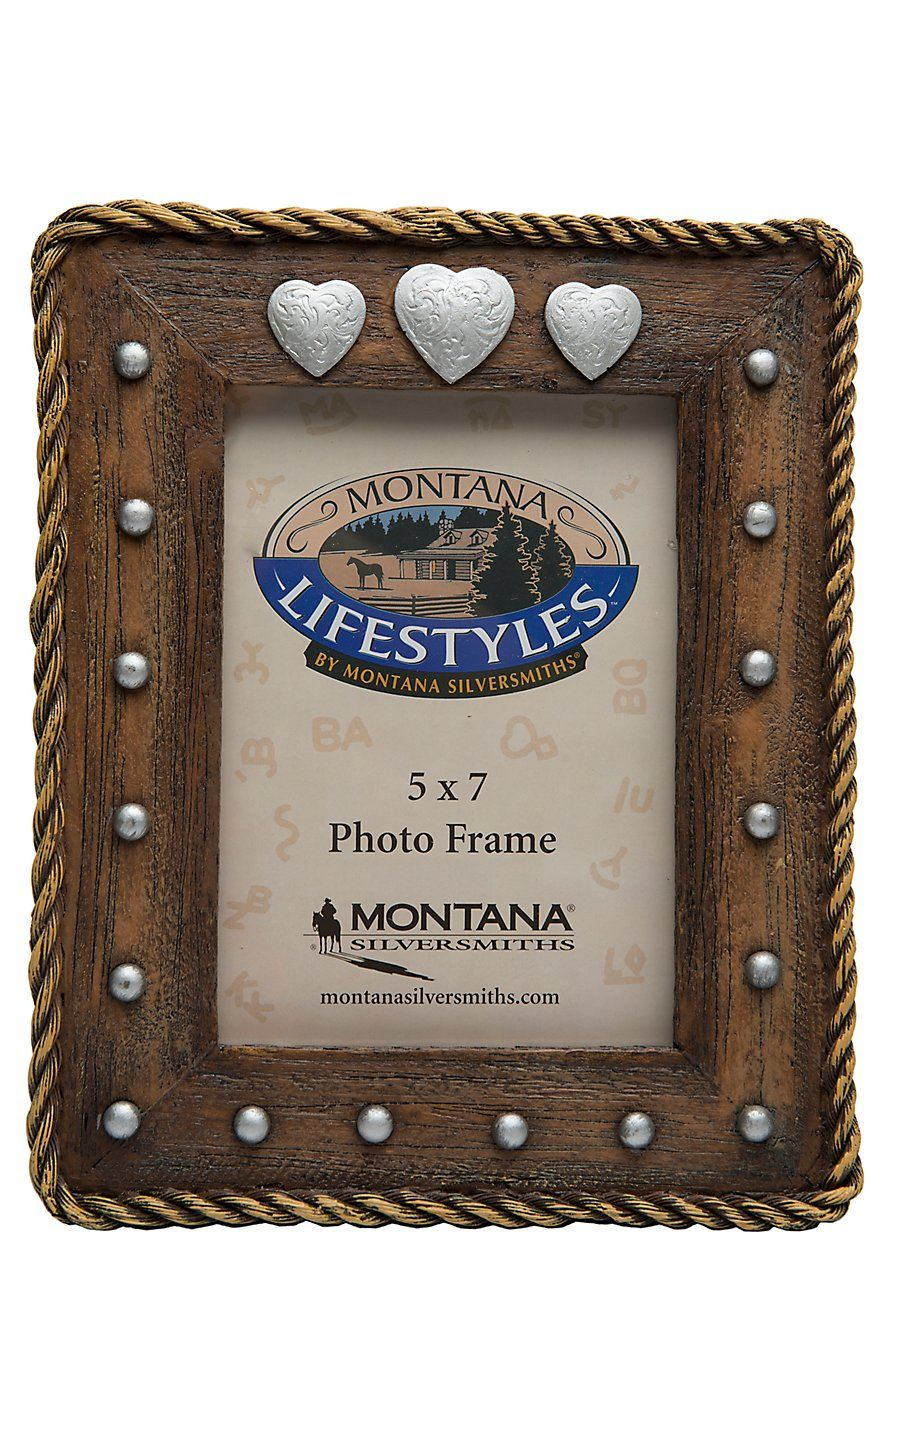 Montana Silversmiths Concho Hearts 5x7 Picture Frame 5x7